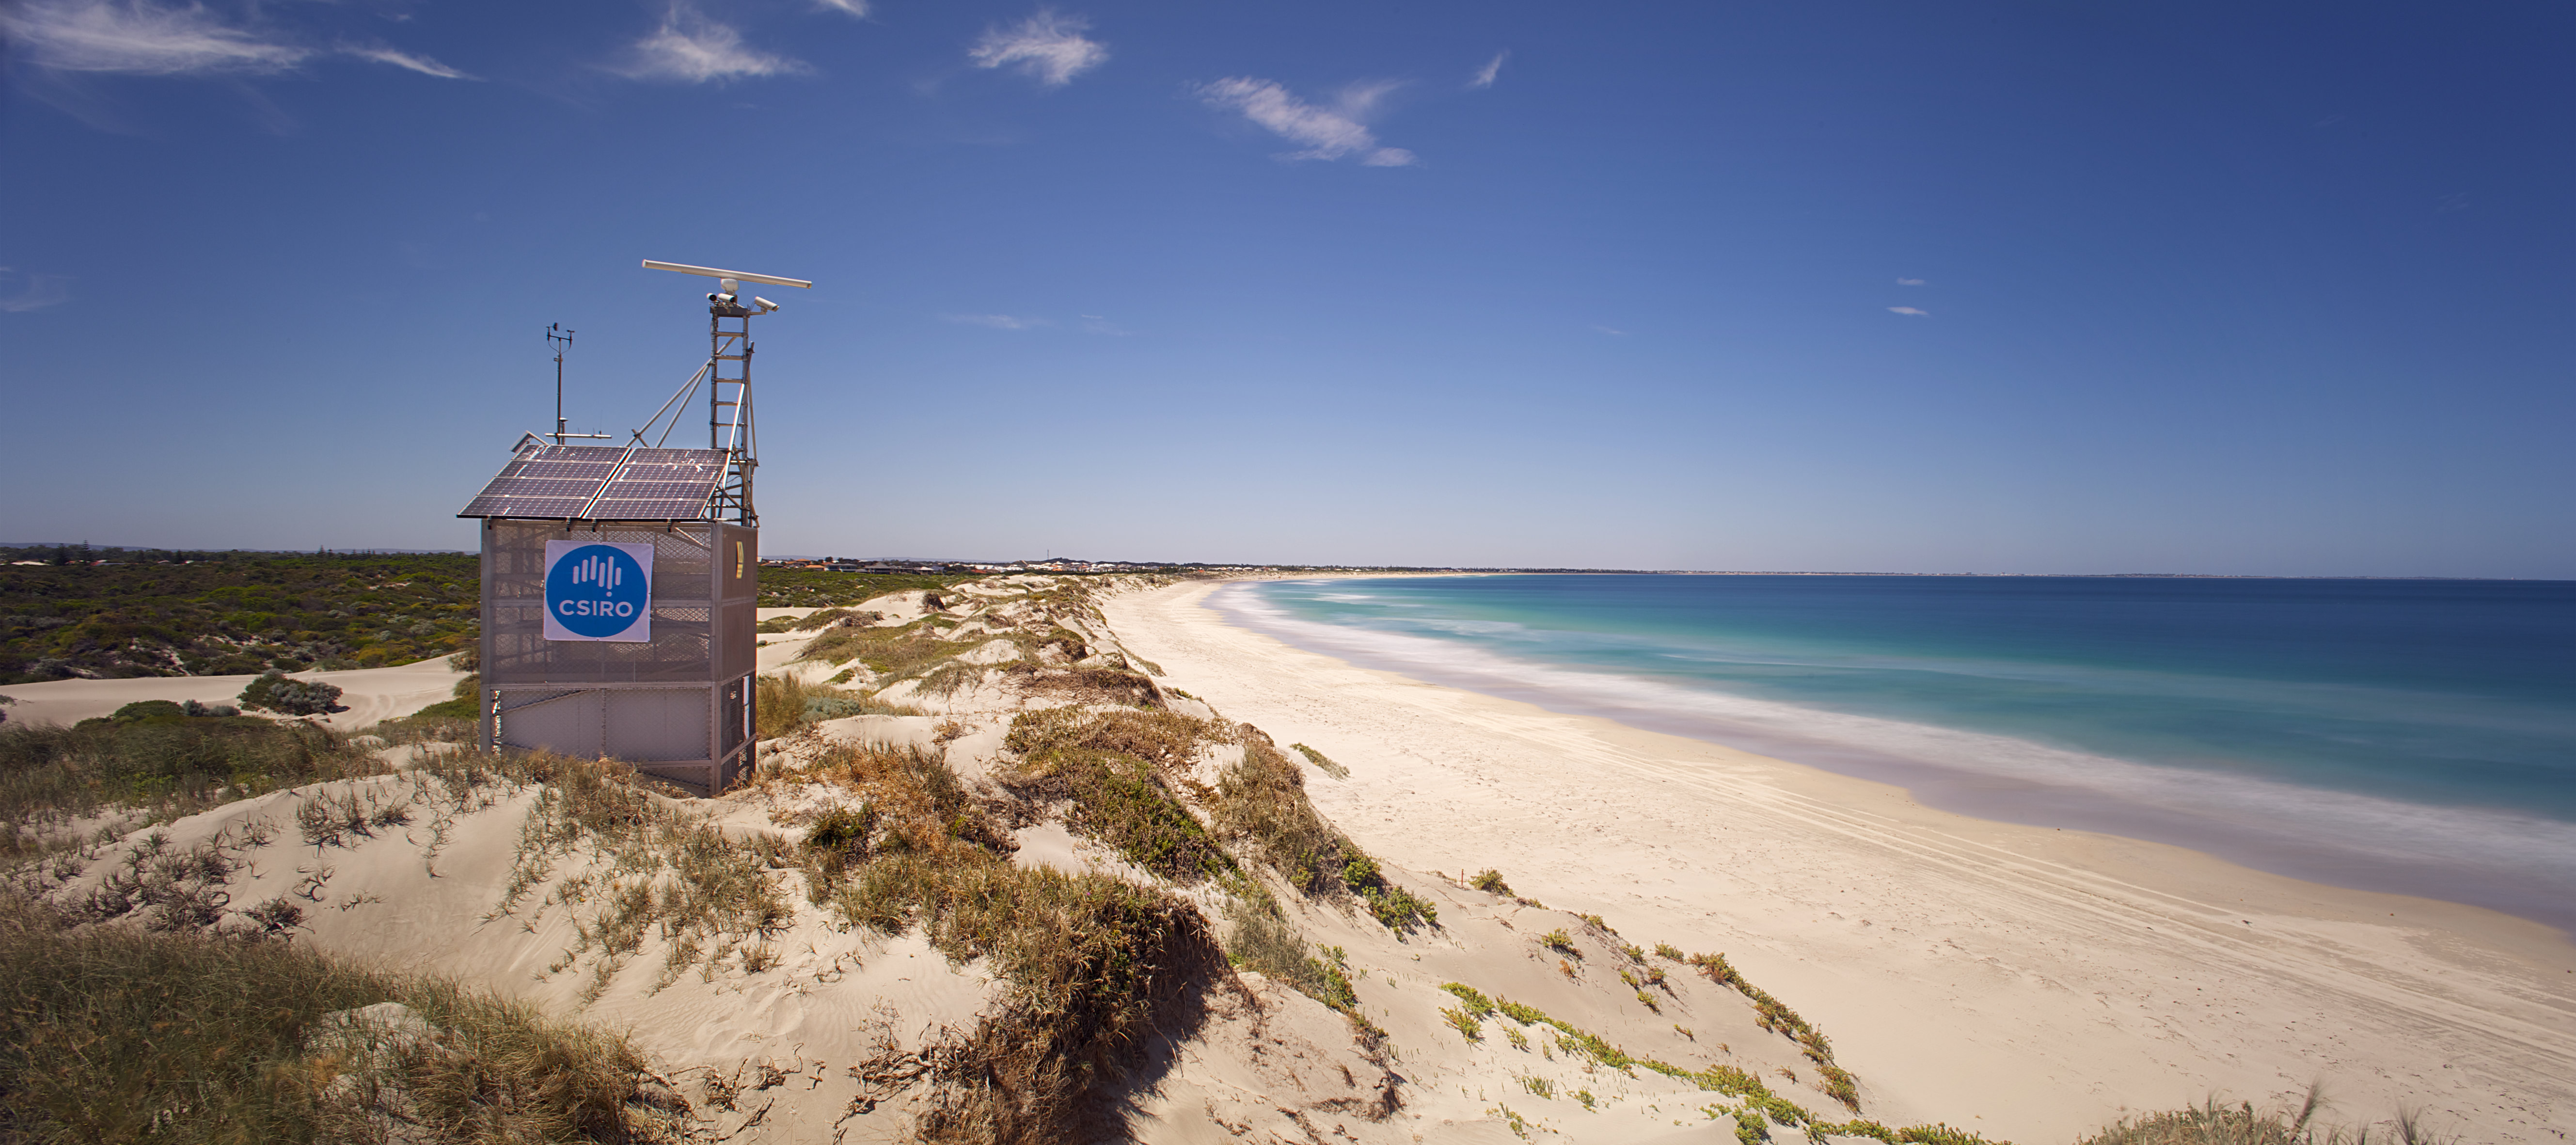 A small hut on a dune behind a beach bearing the CSIRO logo